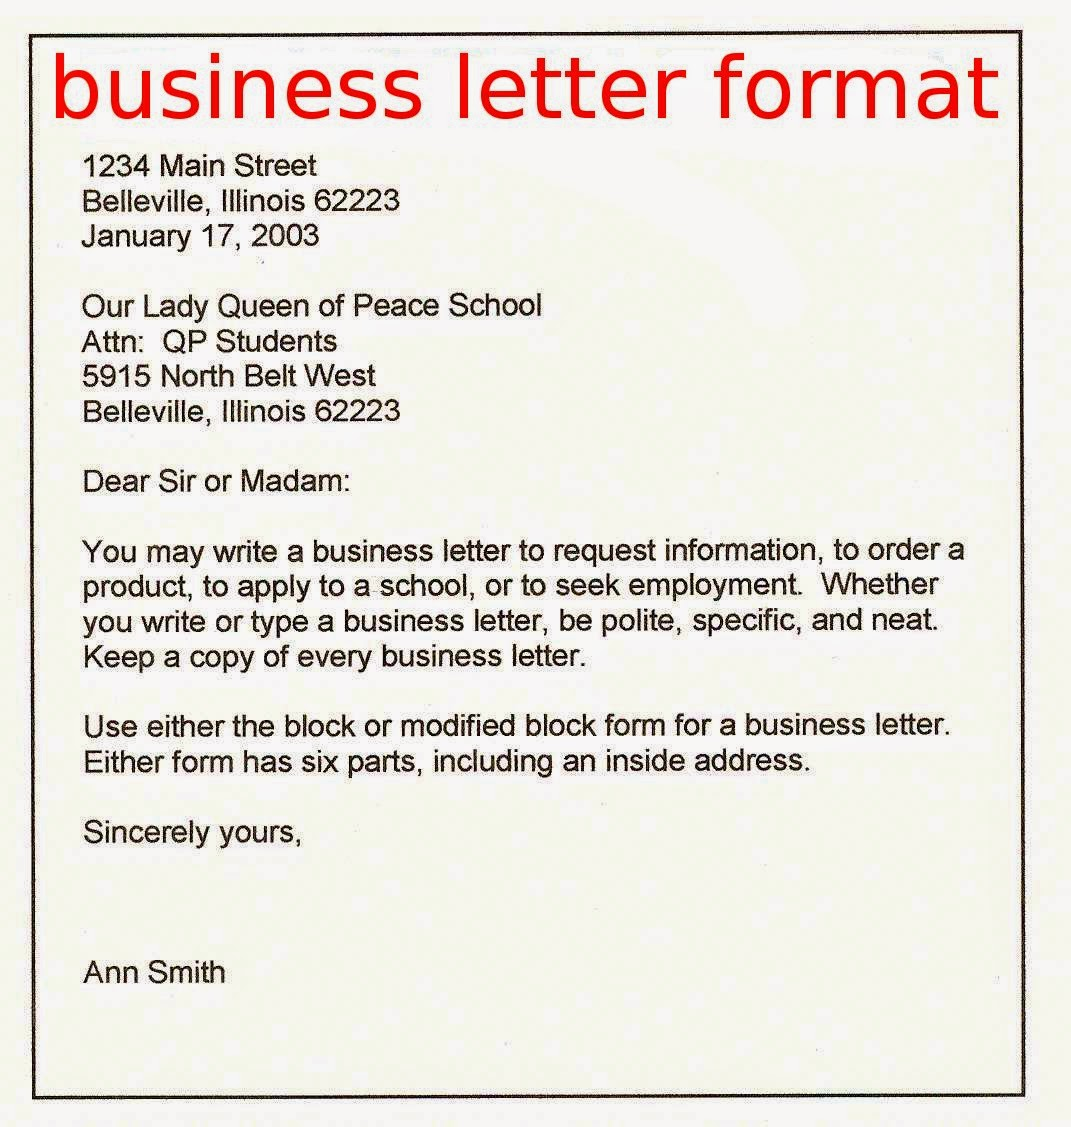 How to Master Proper Business Email Format - and Avoid Professional Disaster